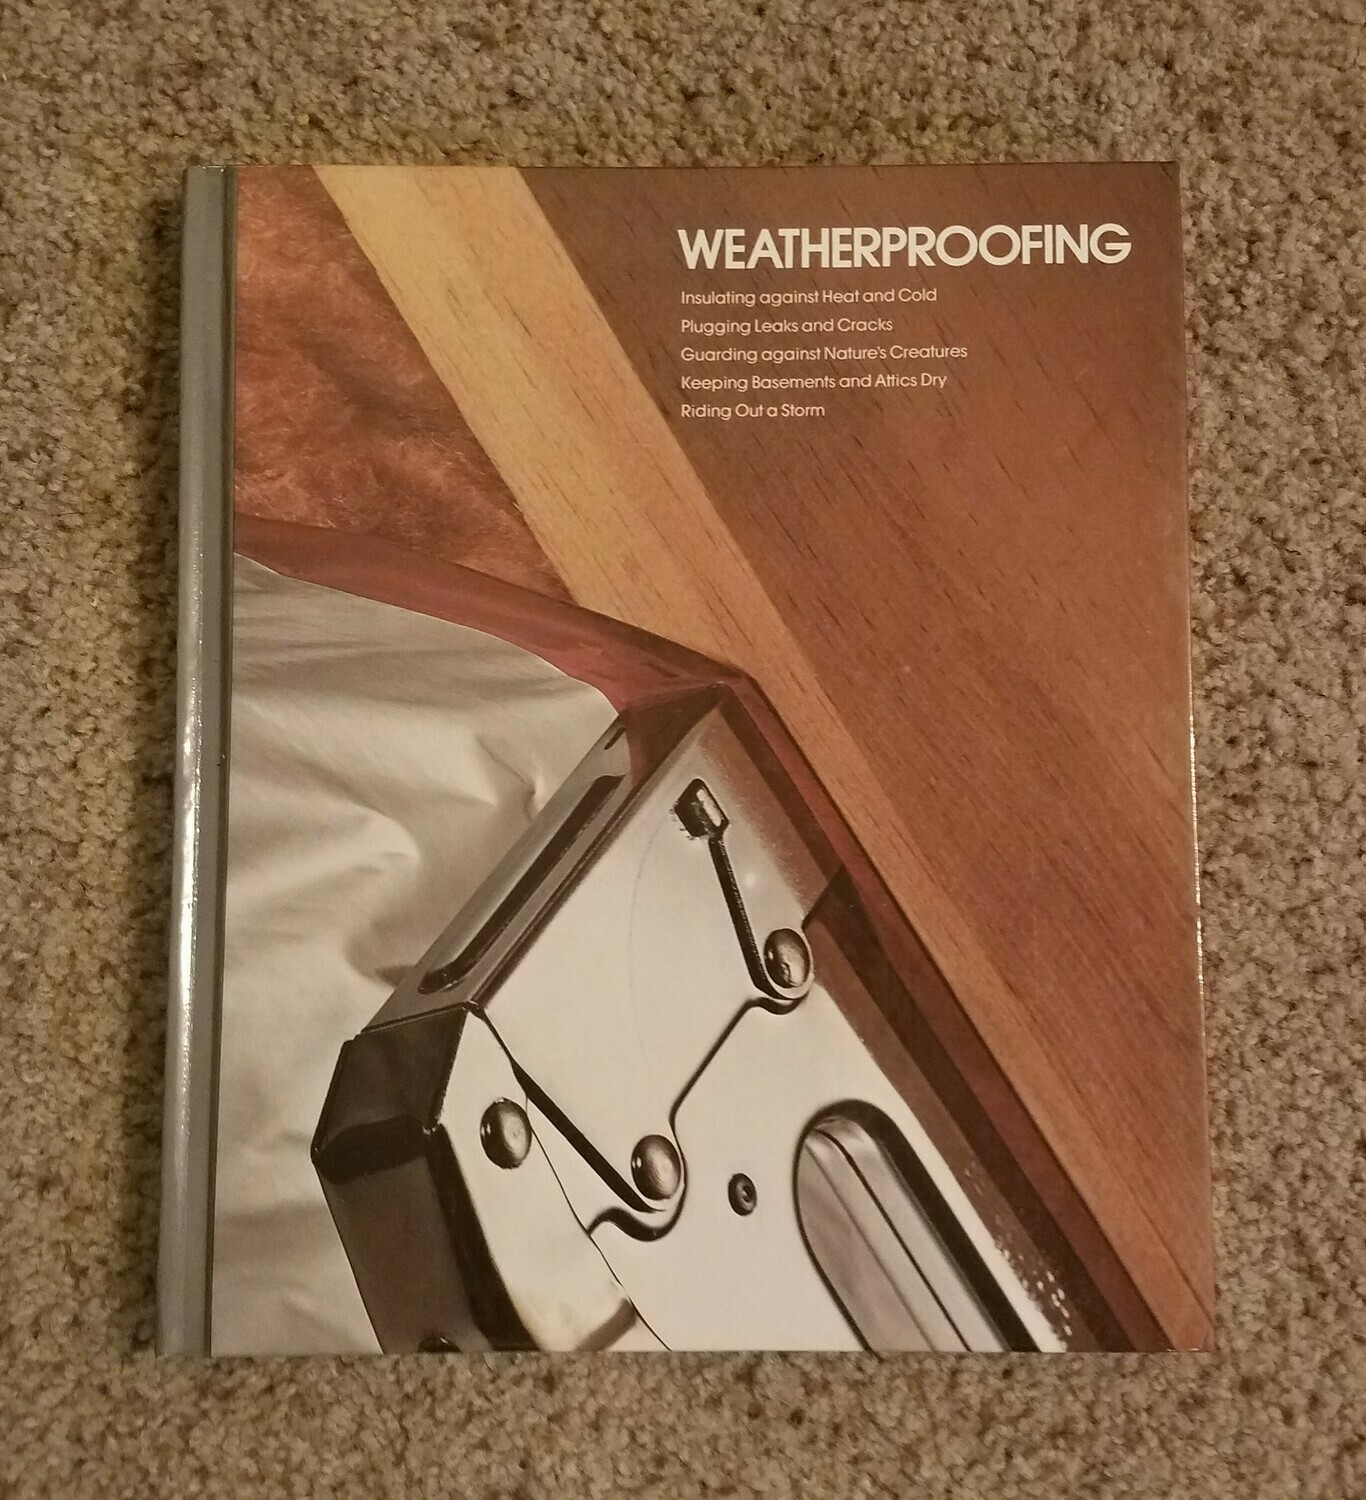 Weatherproofing by Editors of Time-Life Books